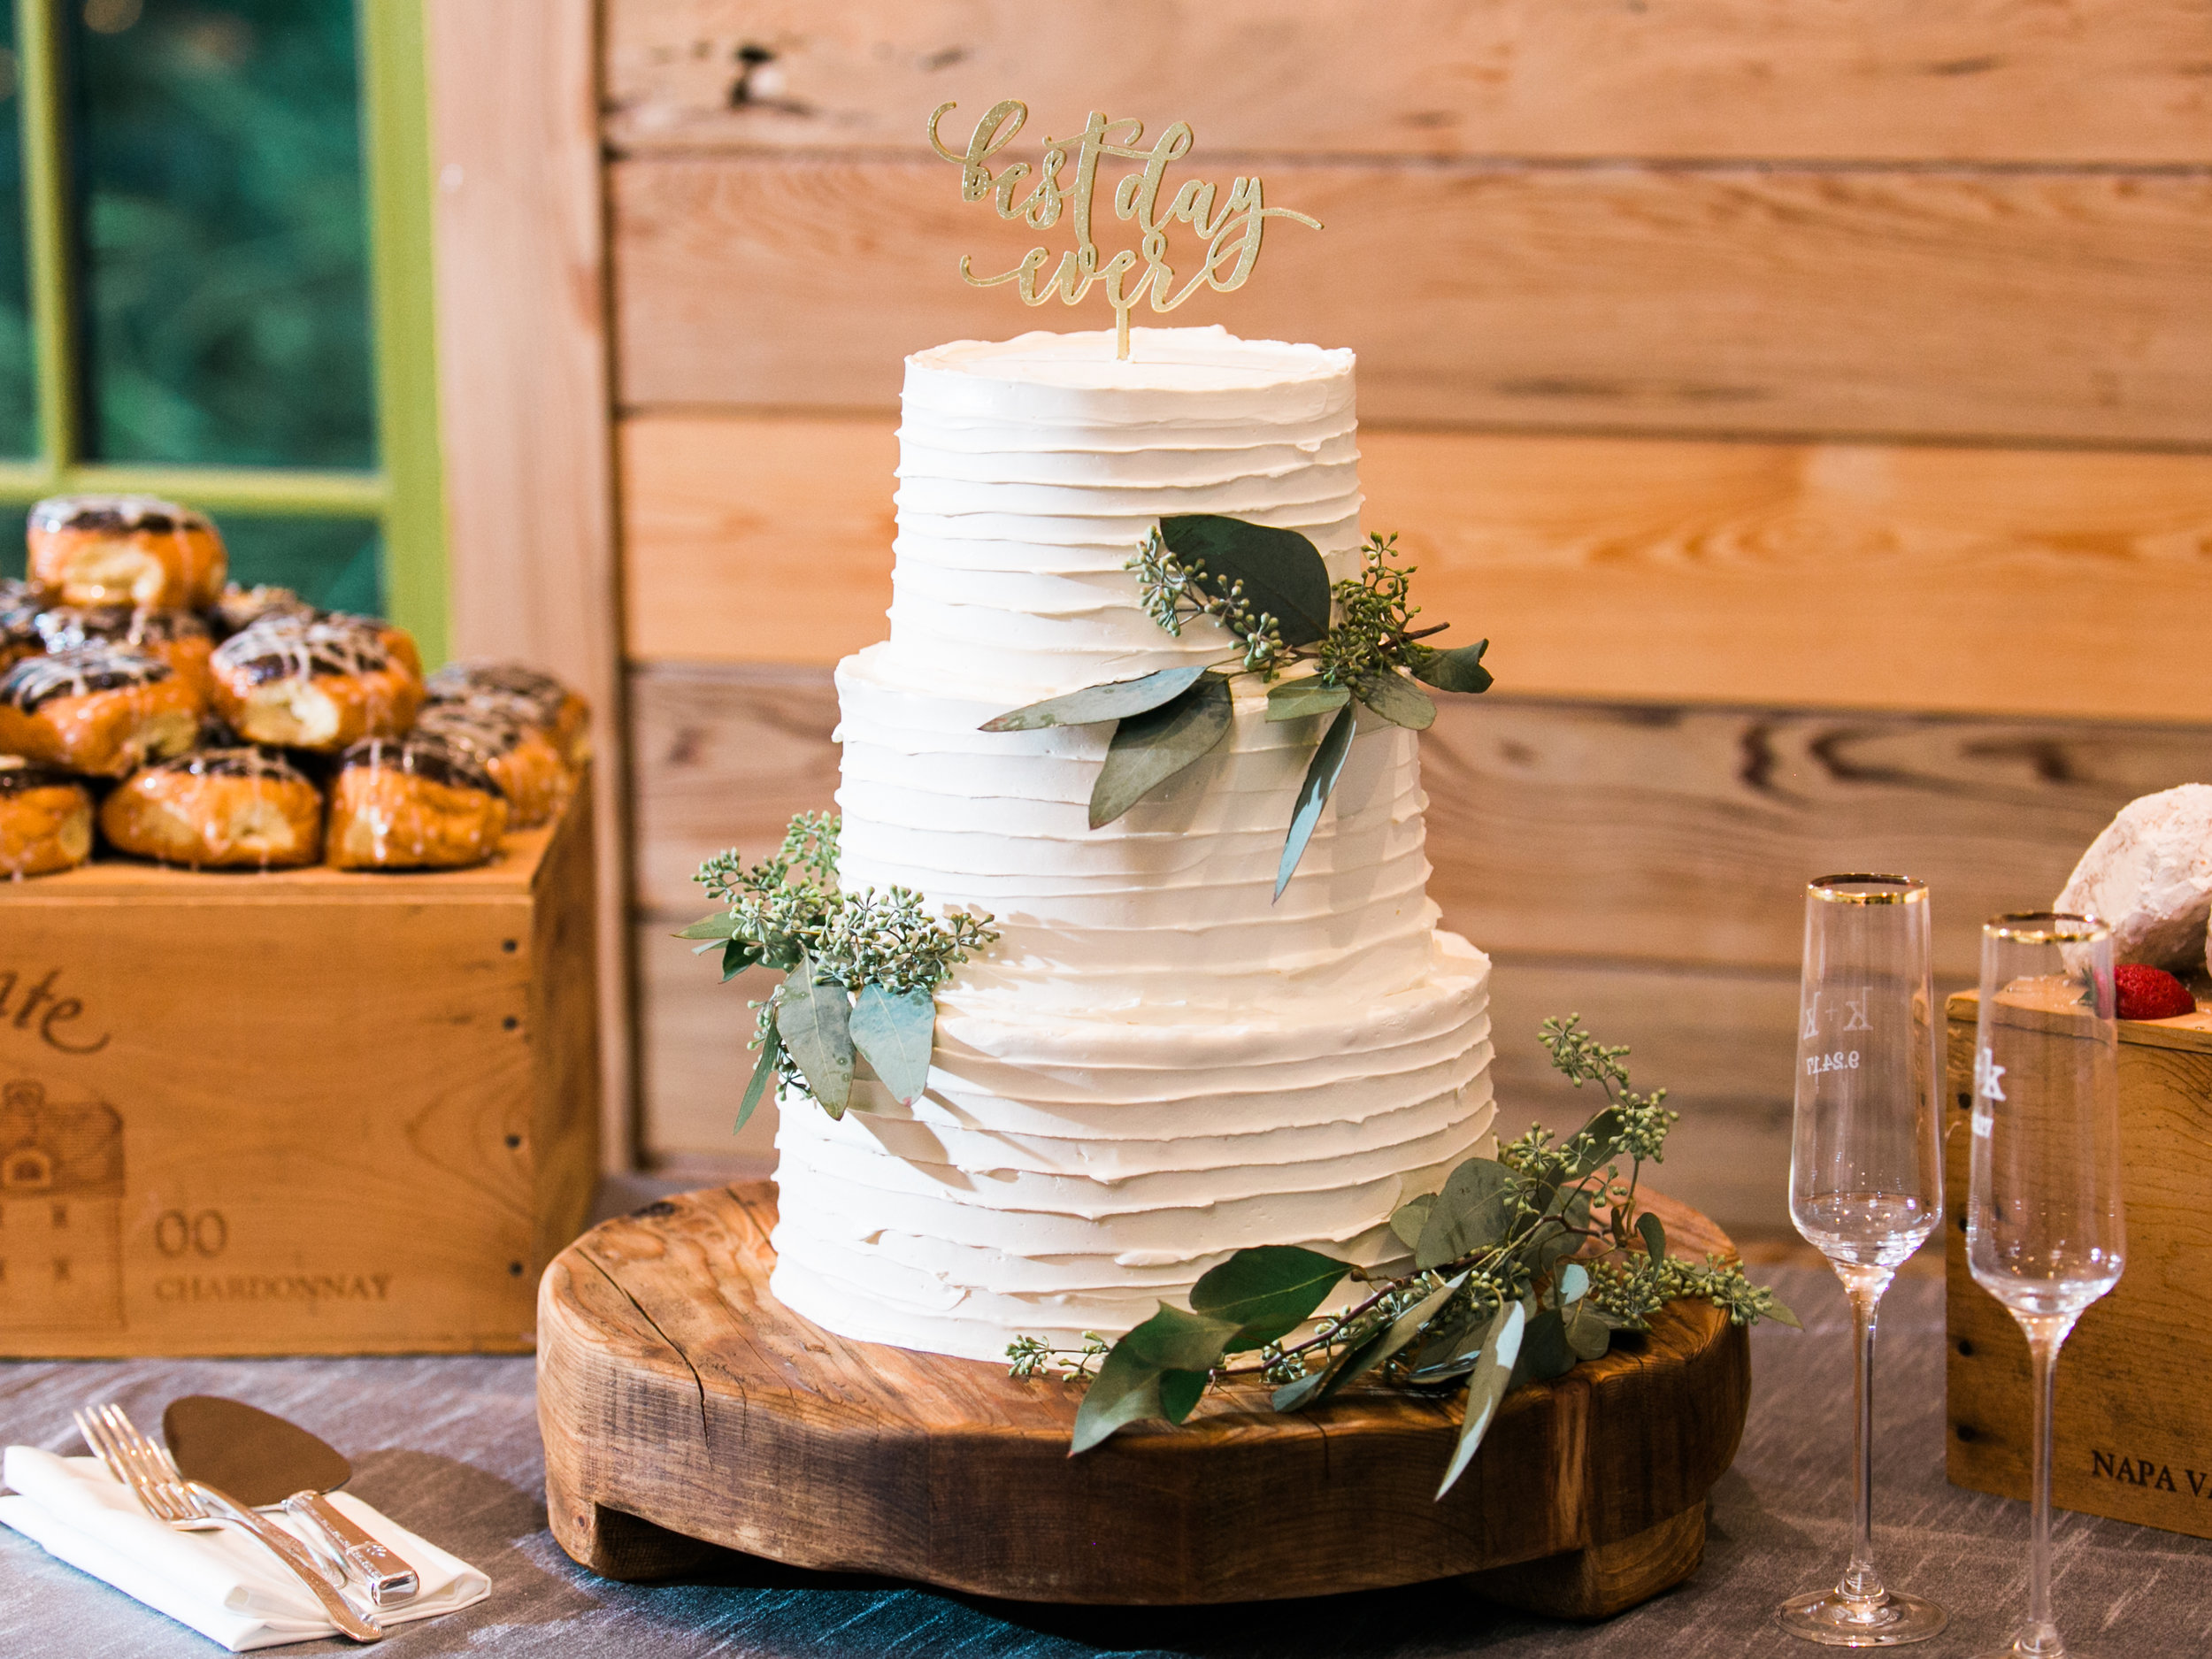 Our wedding cake was one layer of carrot cake, one Italian cream cake and one Almond Joy-inspired... aka the cake of my dreams. I surprised Kurt at the reception with chocolate and peanut butter donuts as his grooms cake.